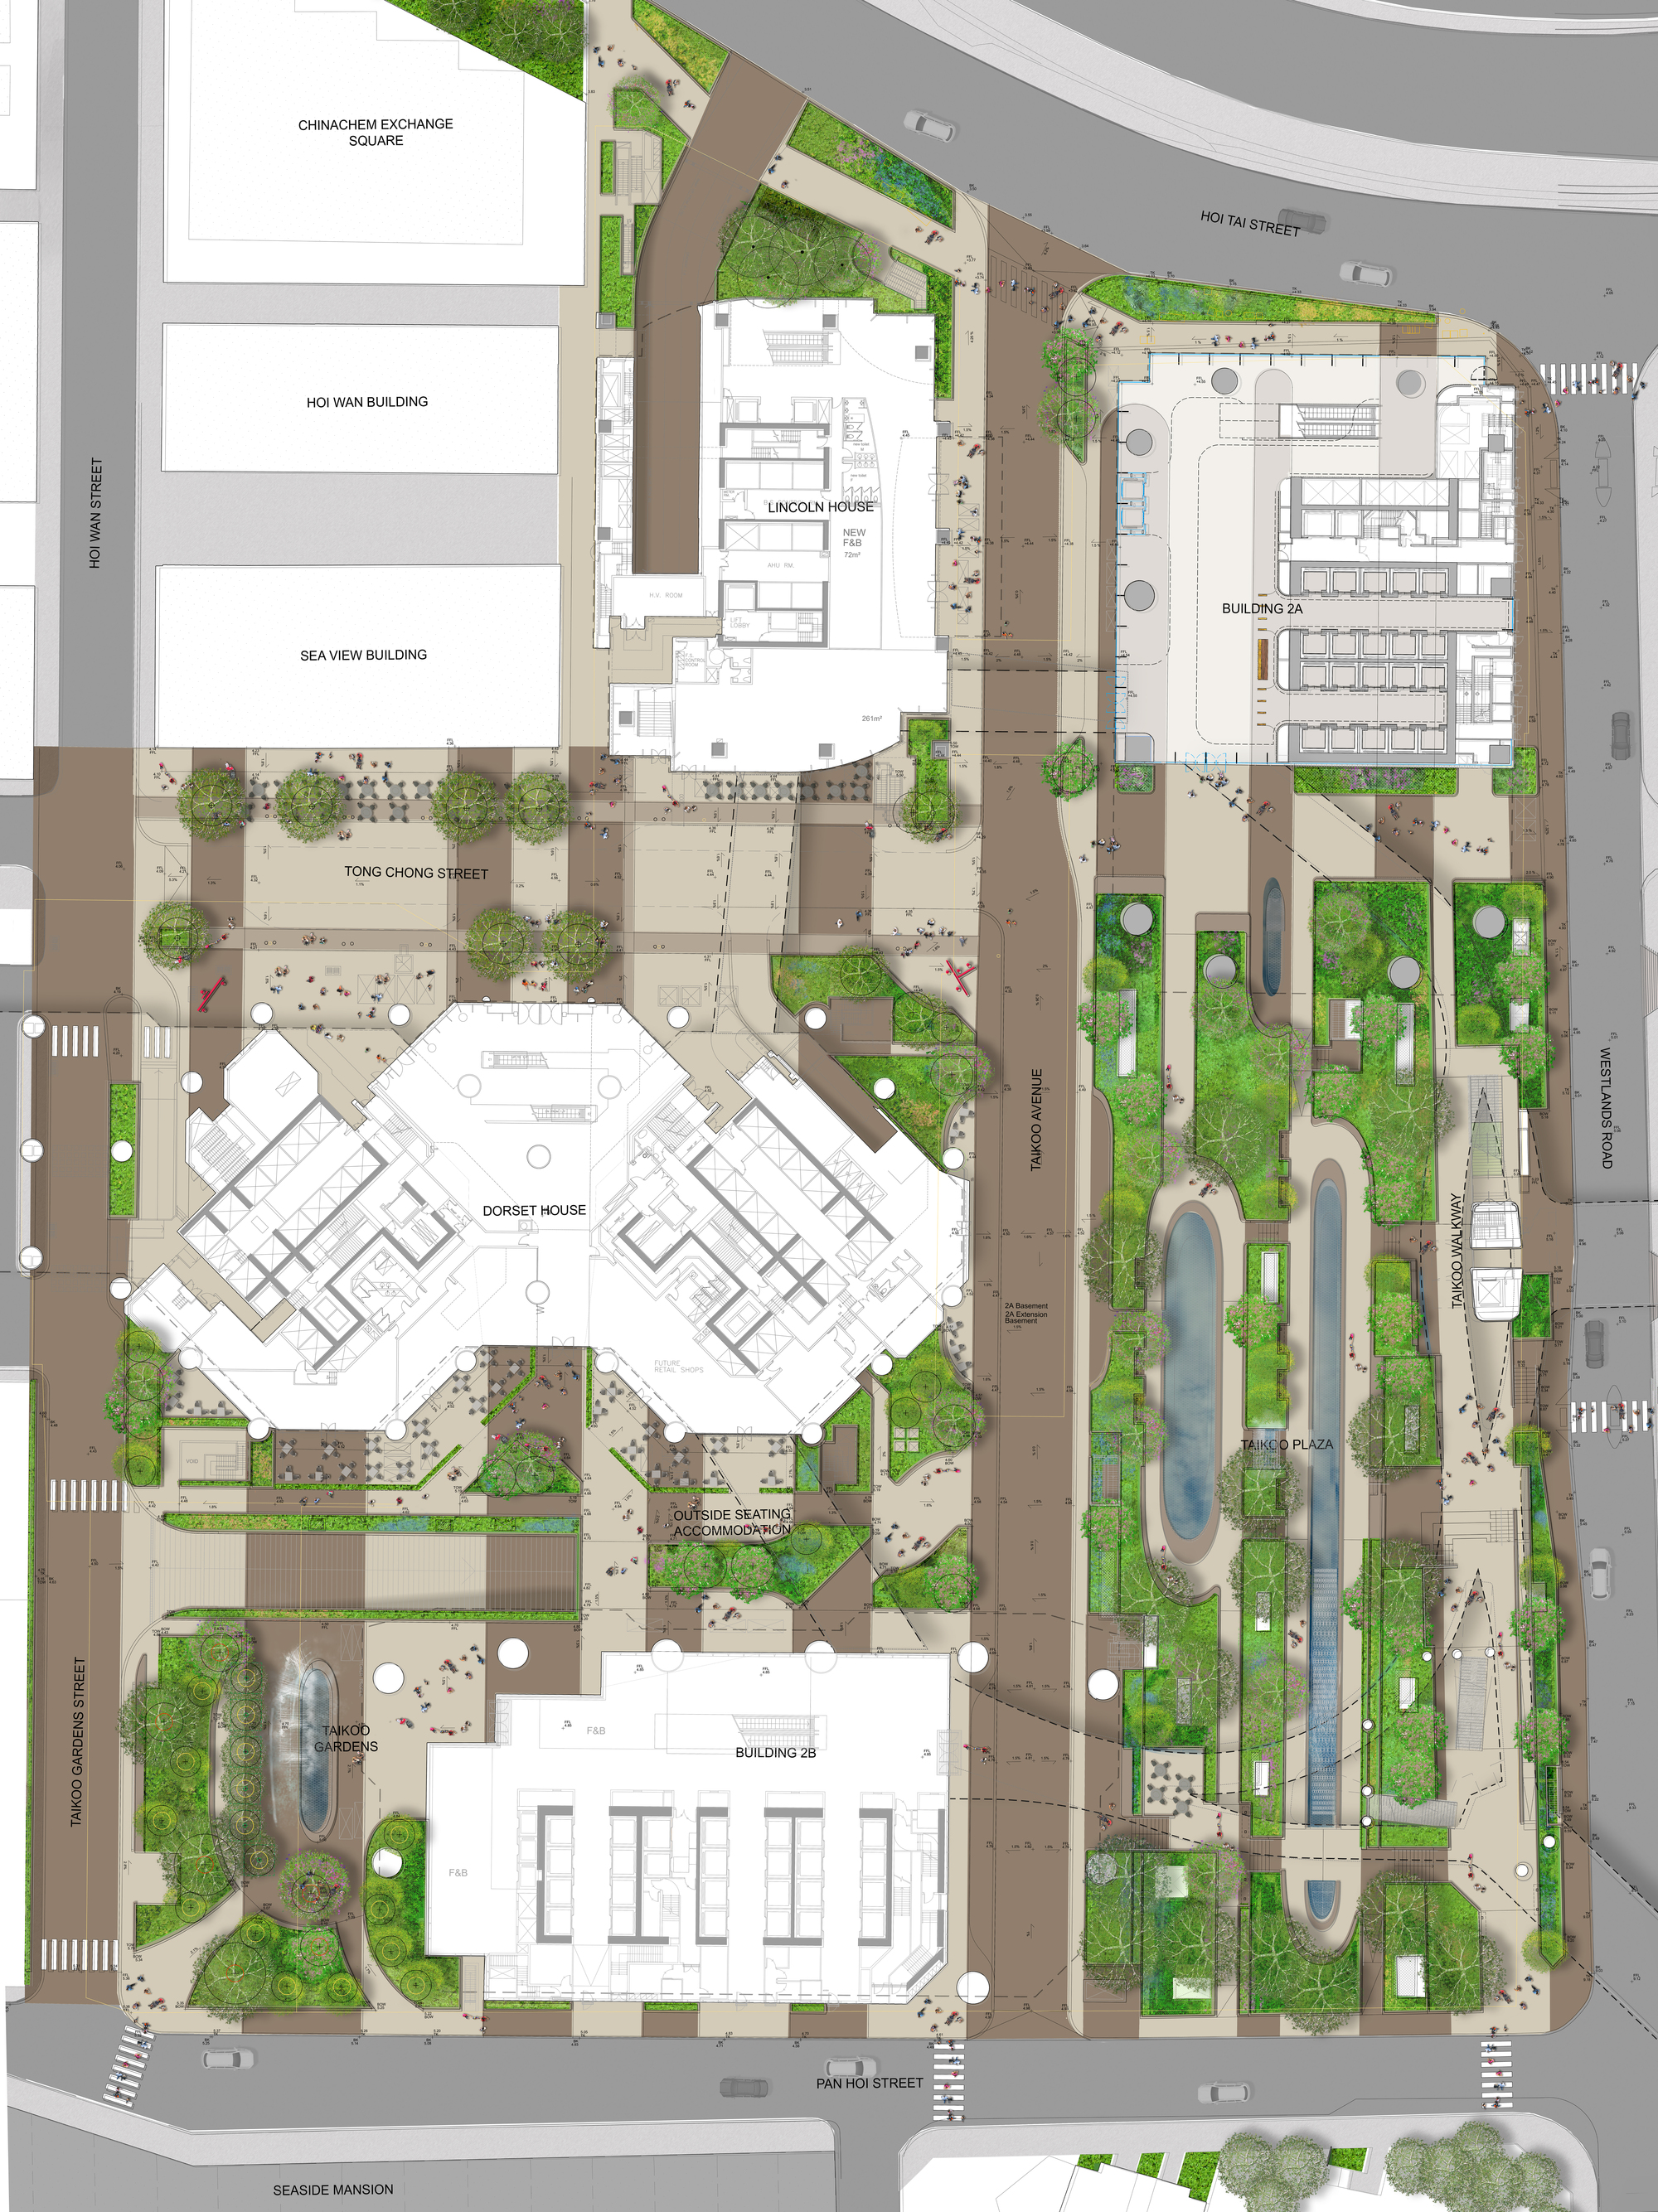 Business Office Floor Plans Gallery Of Public Park Promotes Native Biodiversity In